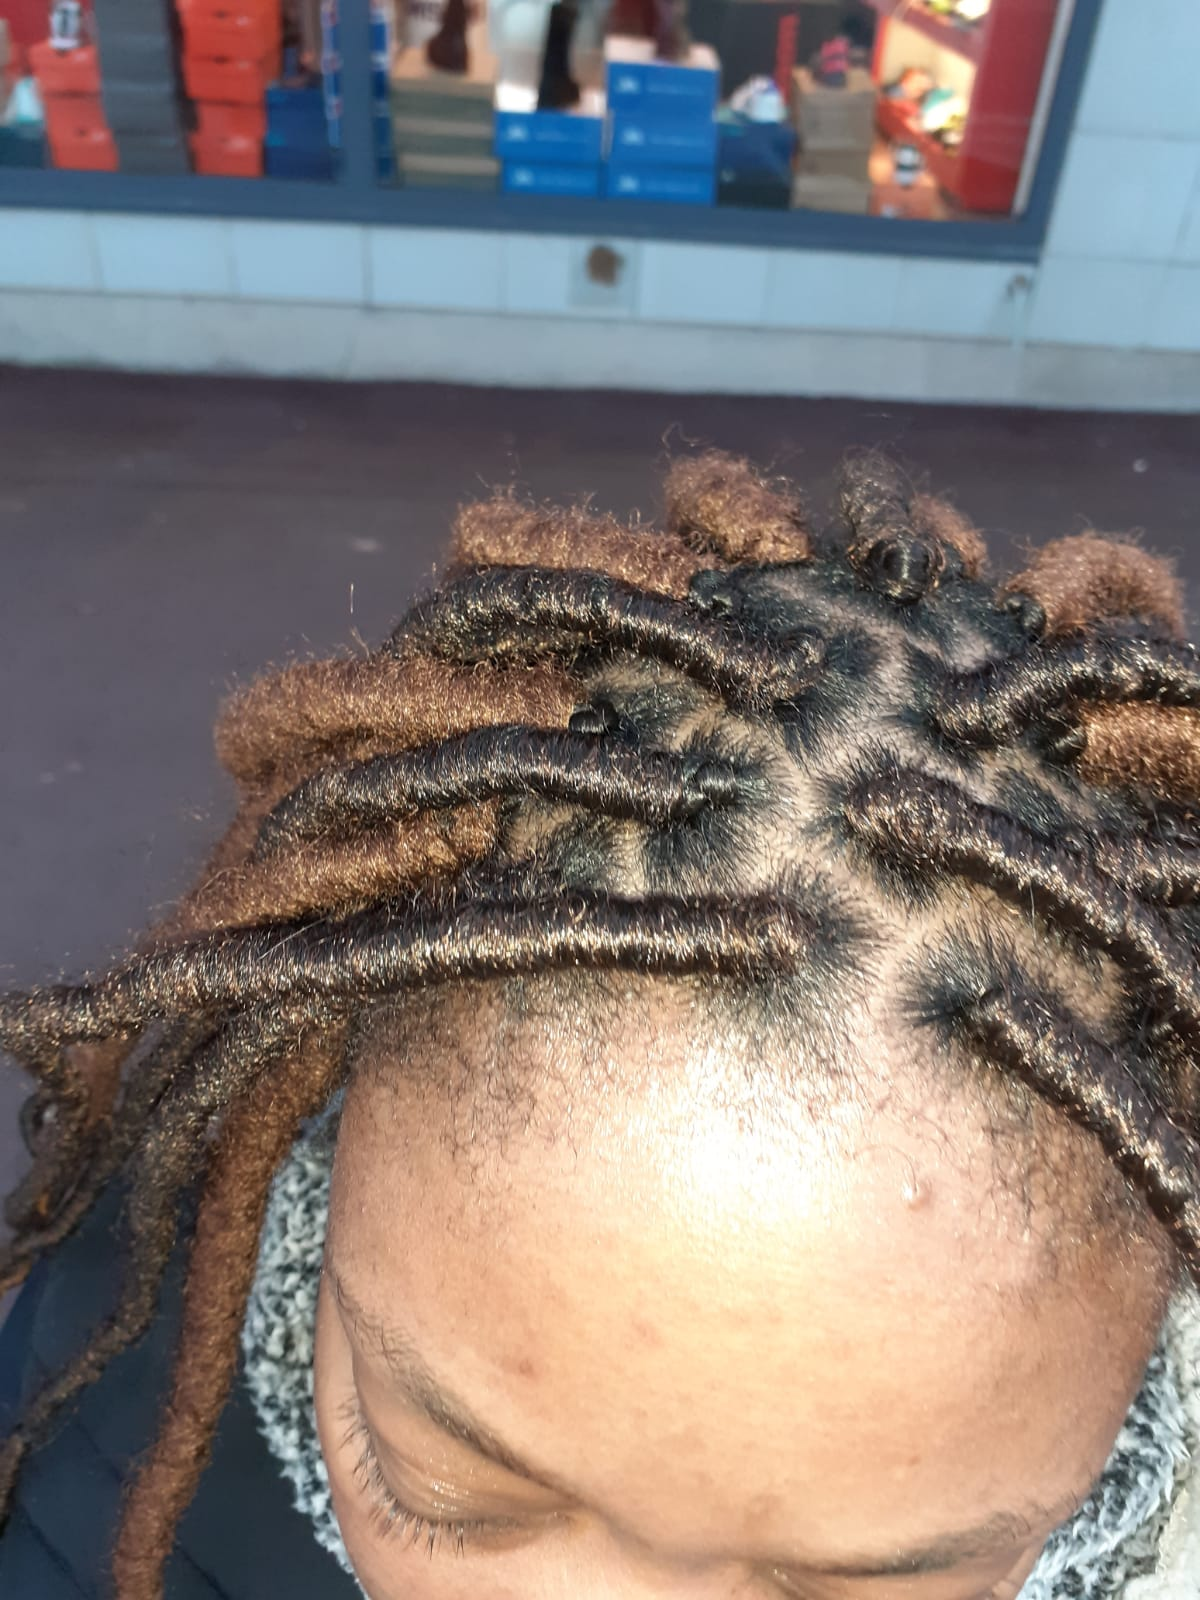 salon de coiffure afro tresse tresses box braids crochet braids vanilles tissages paris 75 77 78 91 92 93 94 95 COAEXEPS